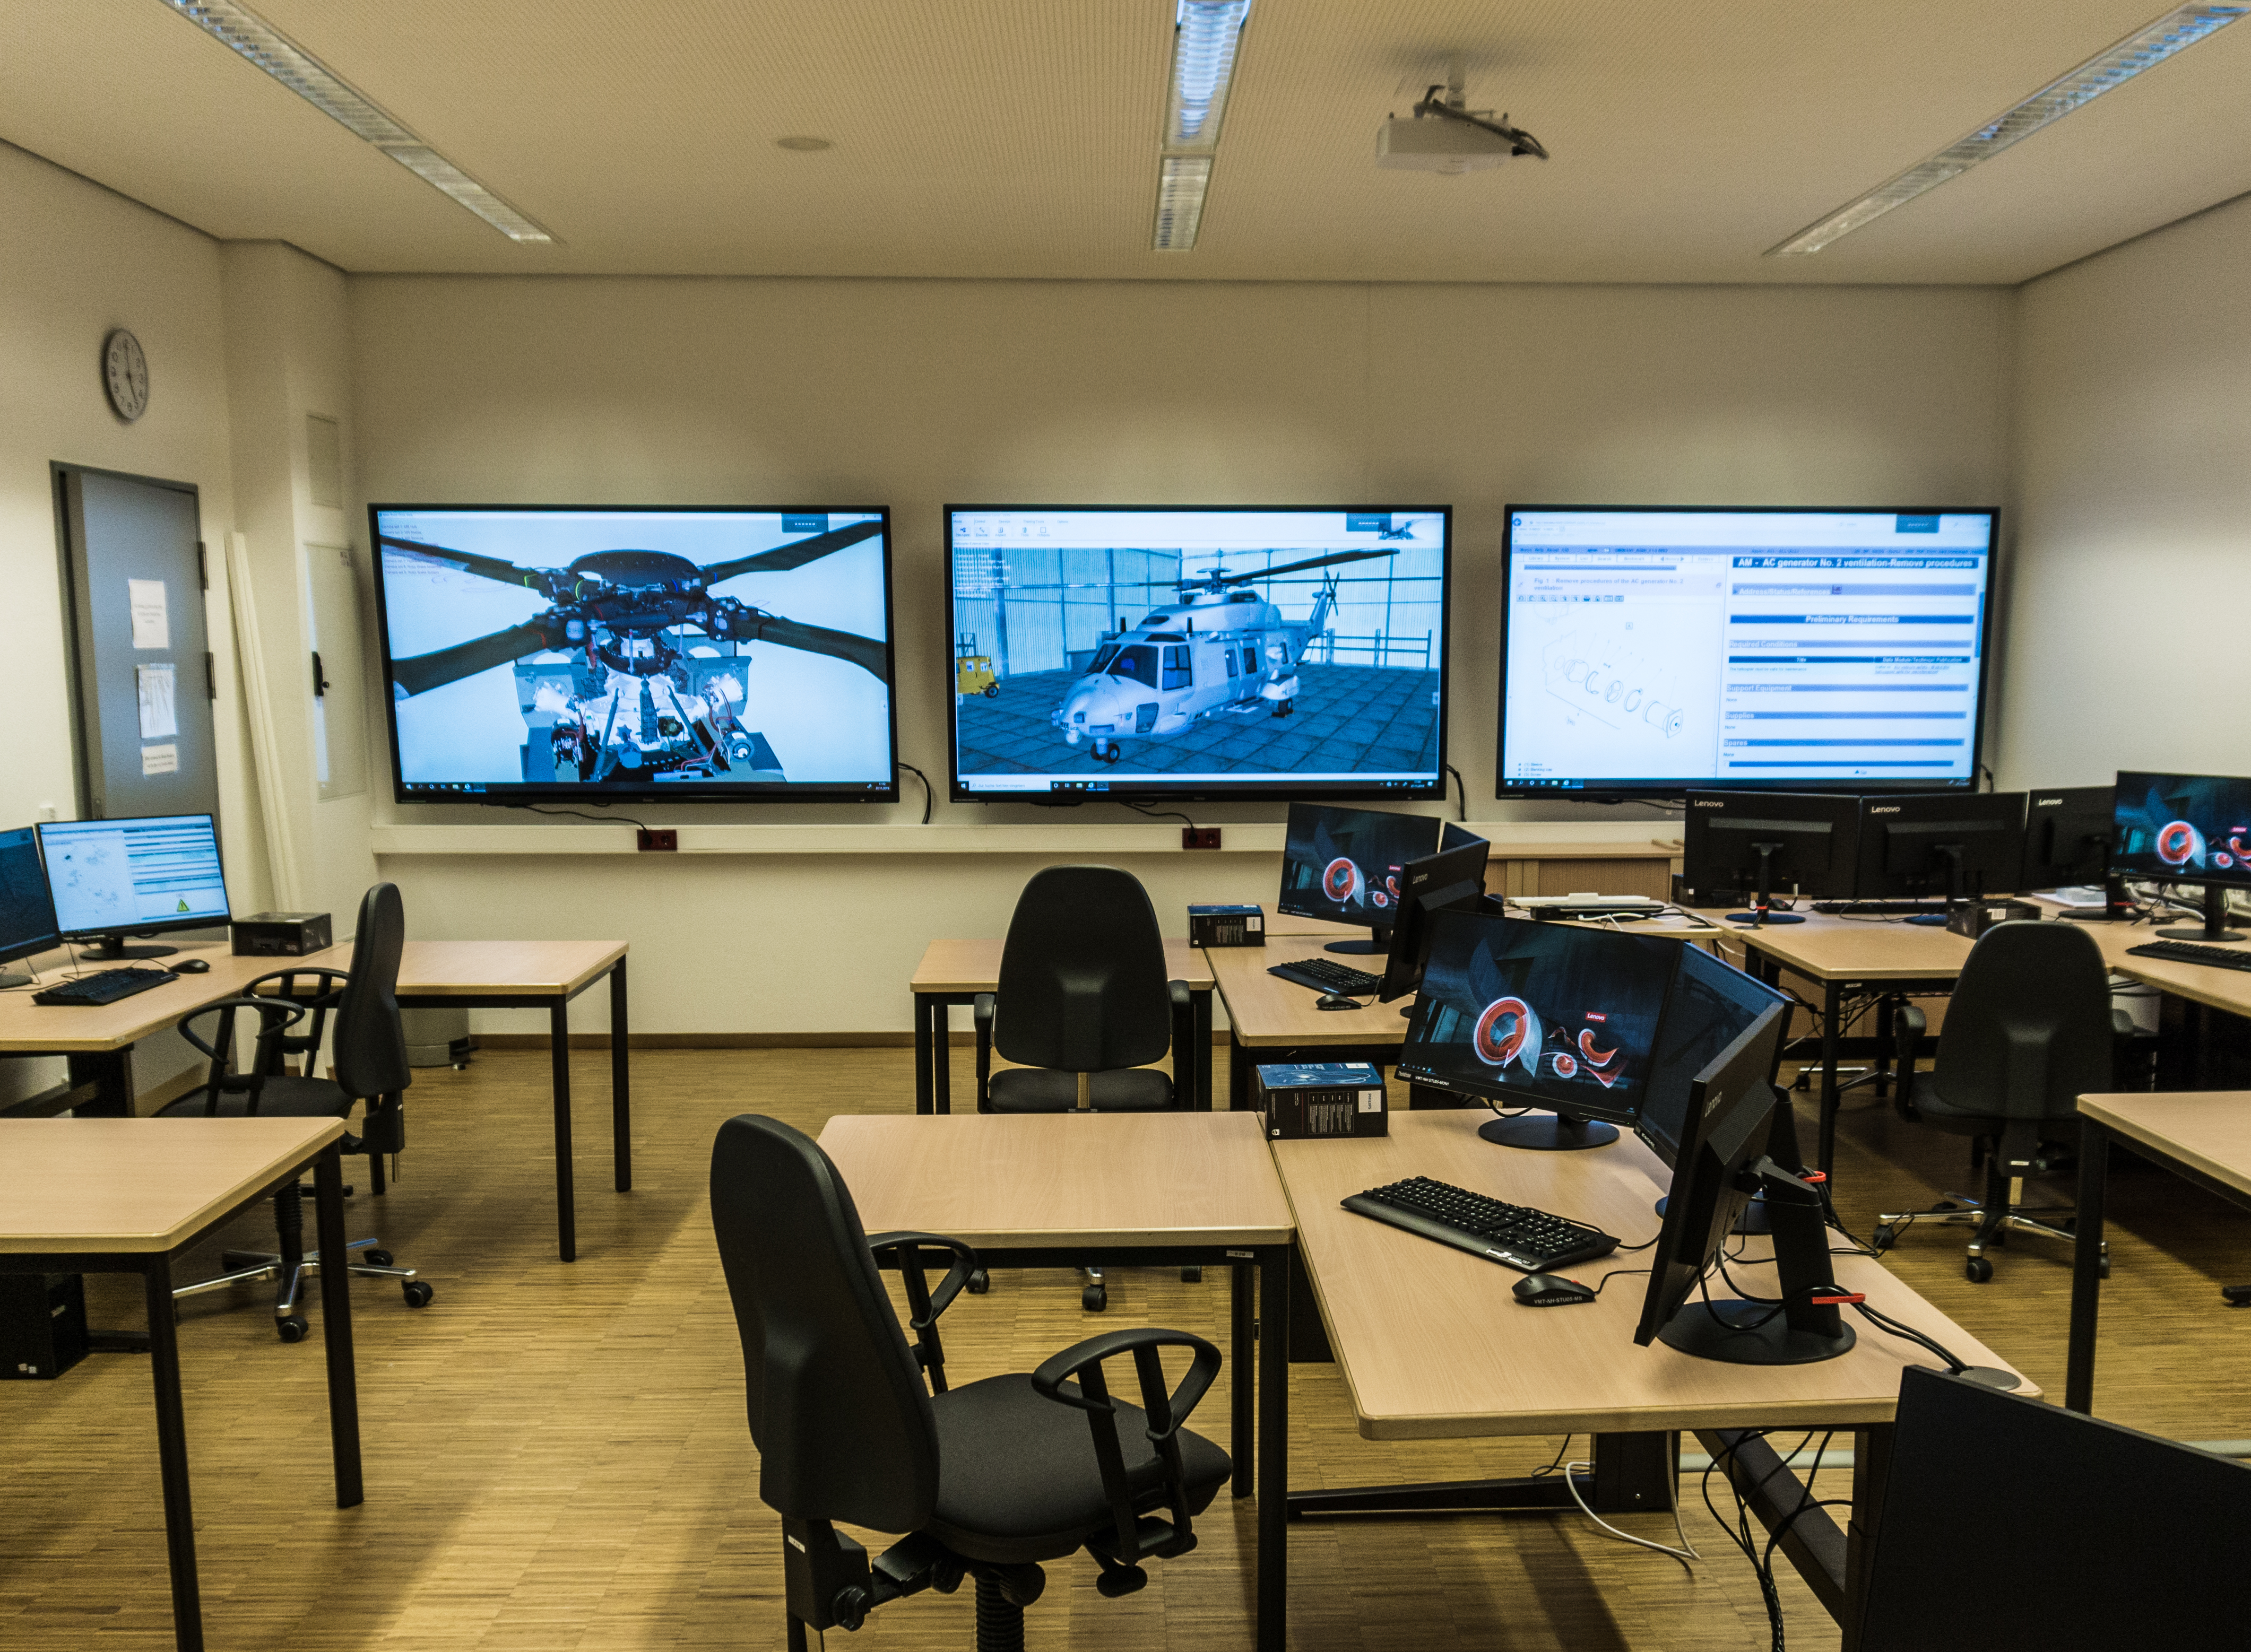 Nh90 classroom picture